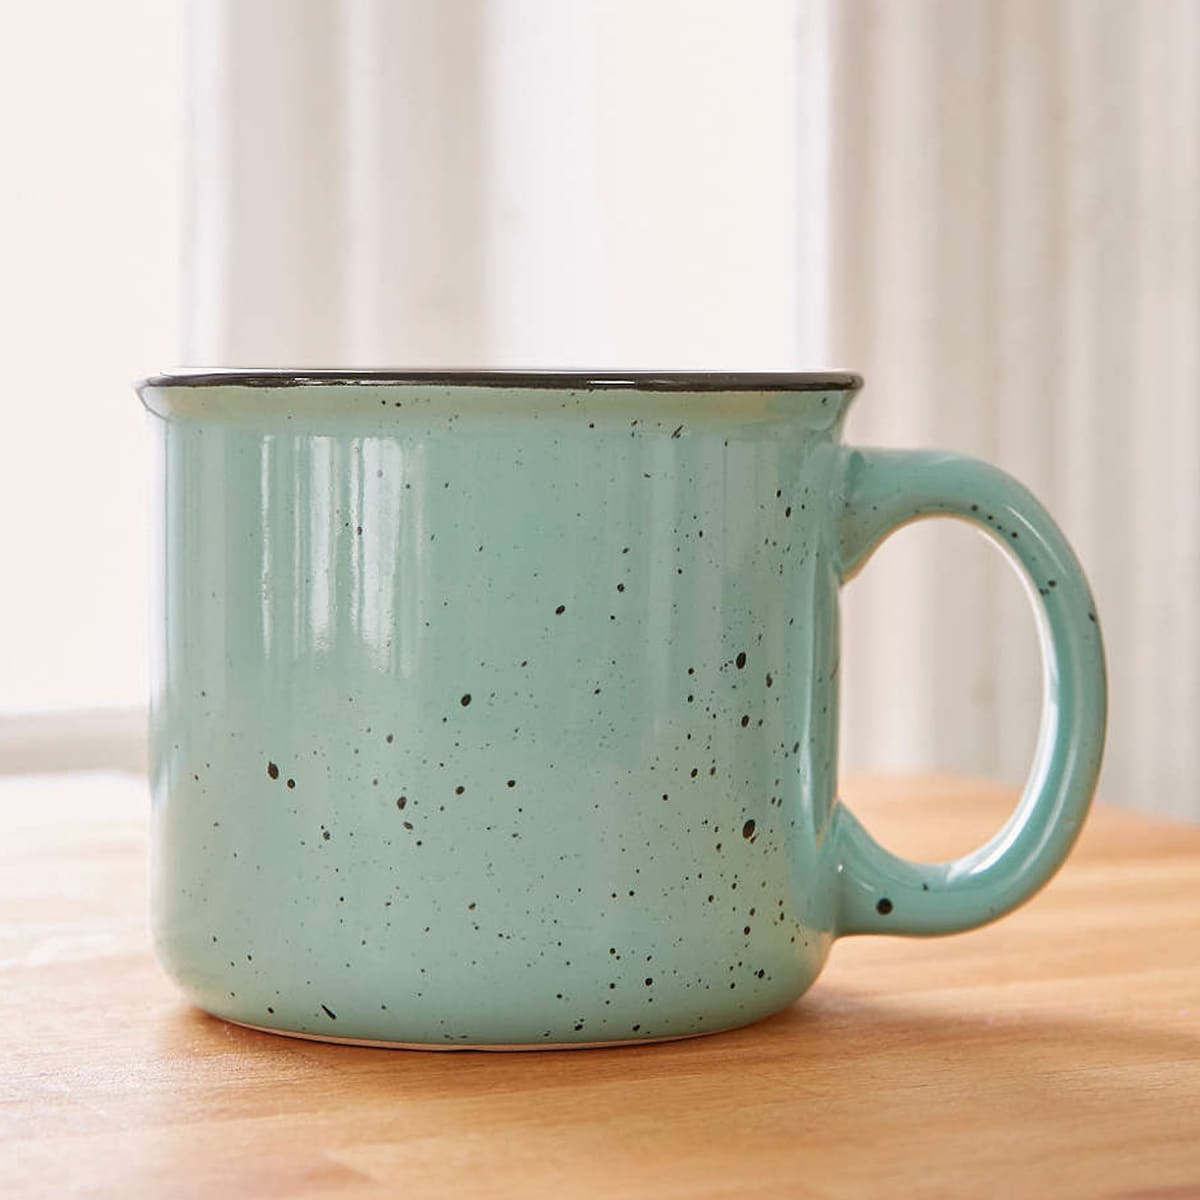 10 Pretty Mugs to Dress Up Your Desk: gallery image 6